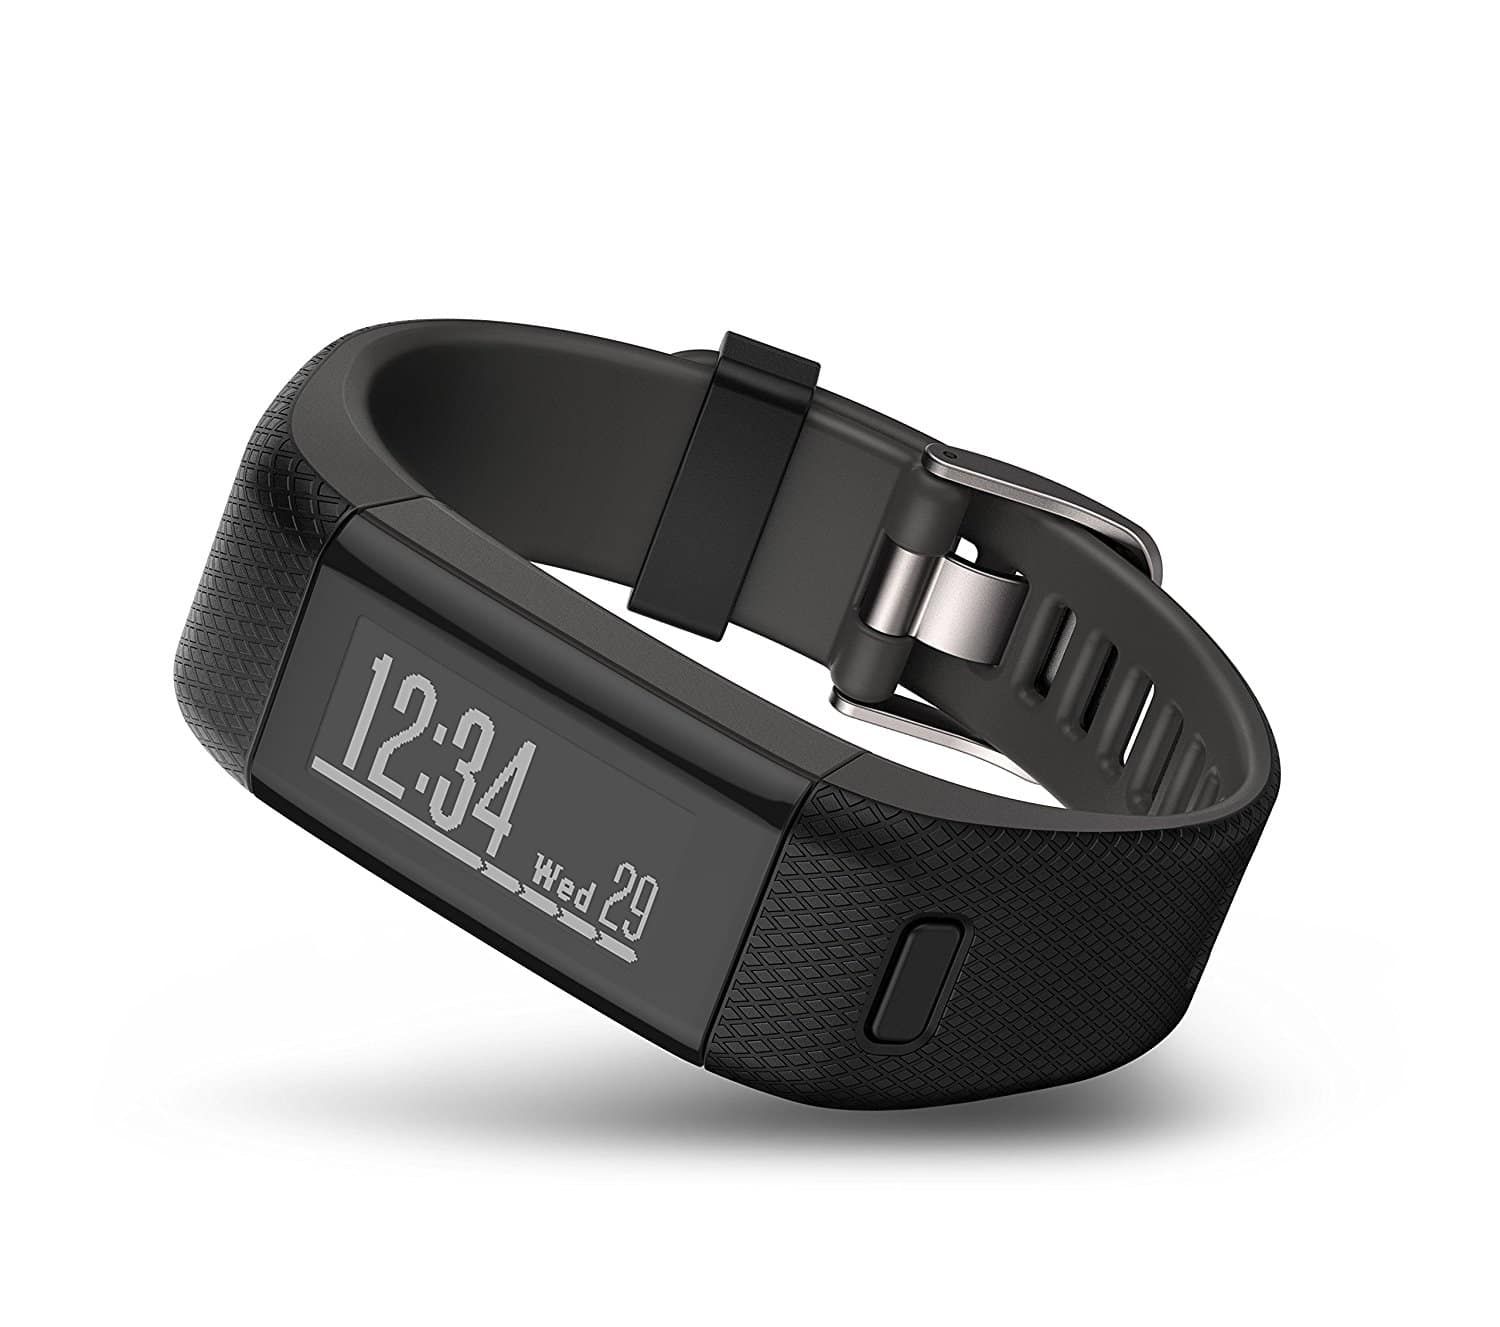 Garmin Vivosmart HR+ (Review)